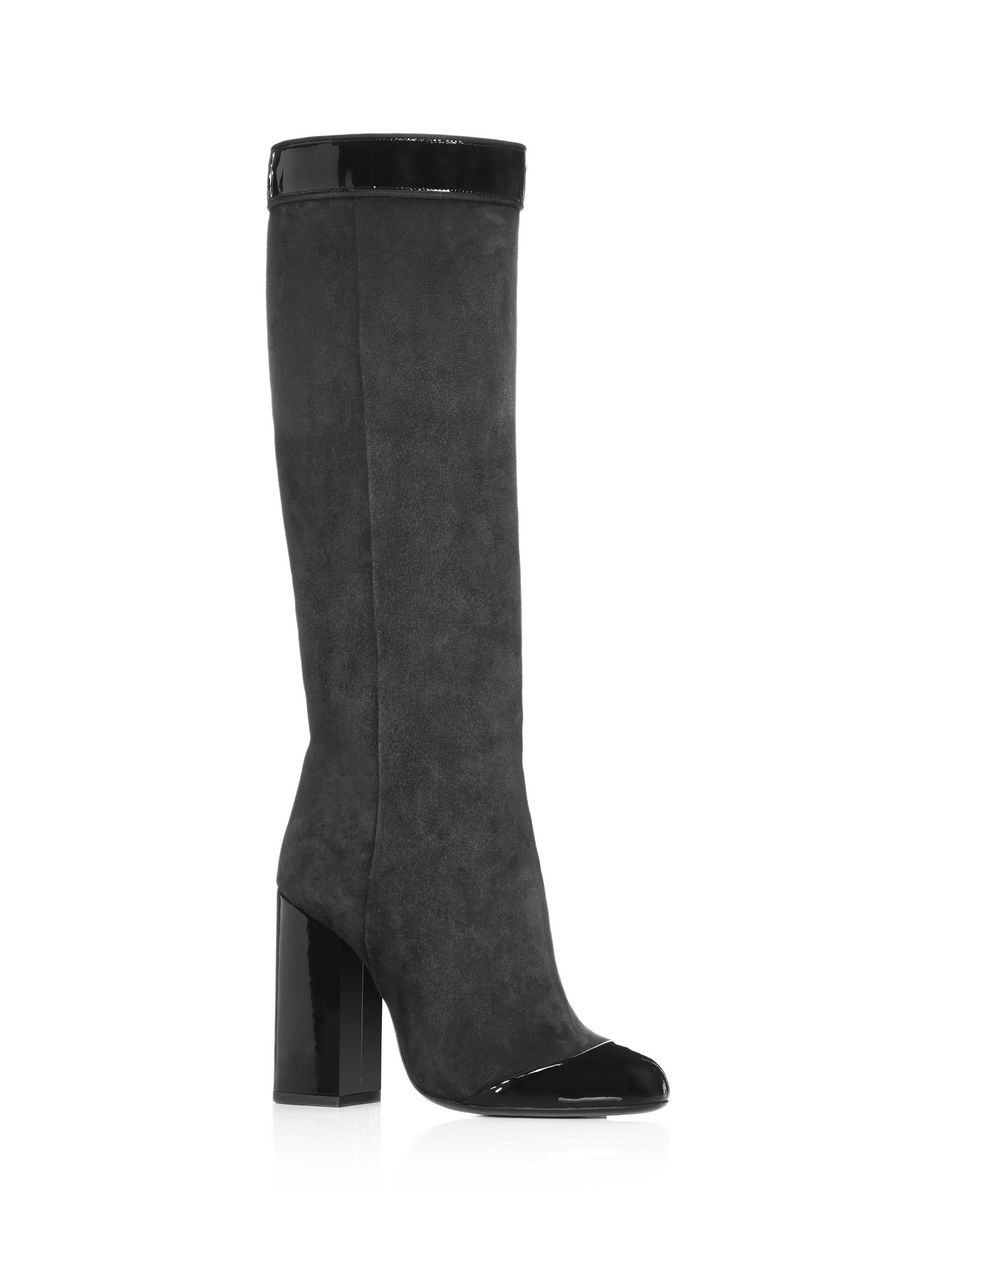 TWO LEATHER HIGH HEEL BOOT - Lanvin